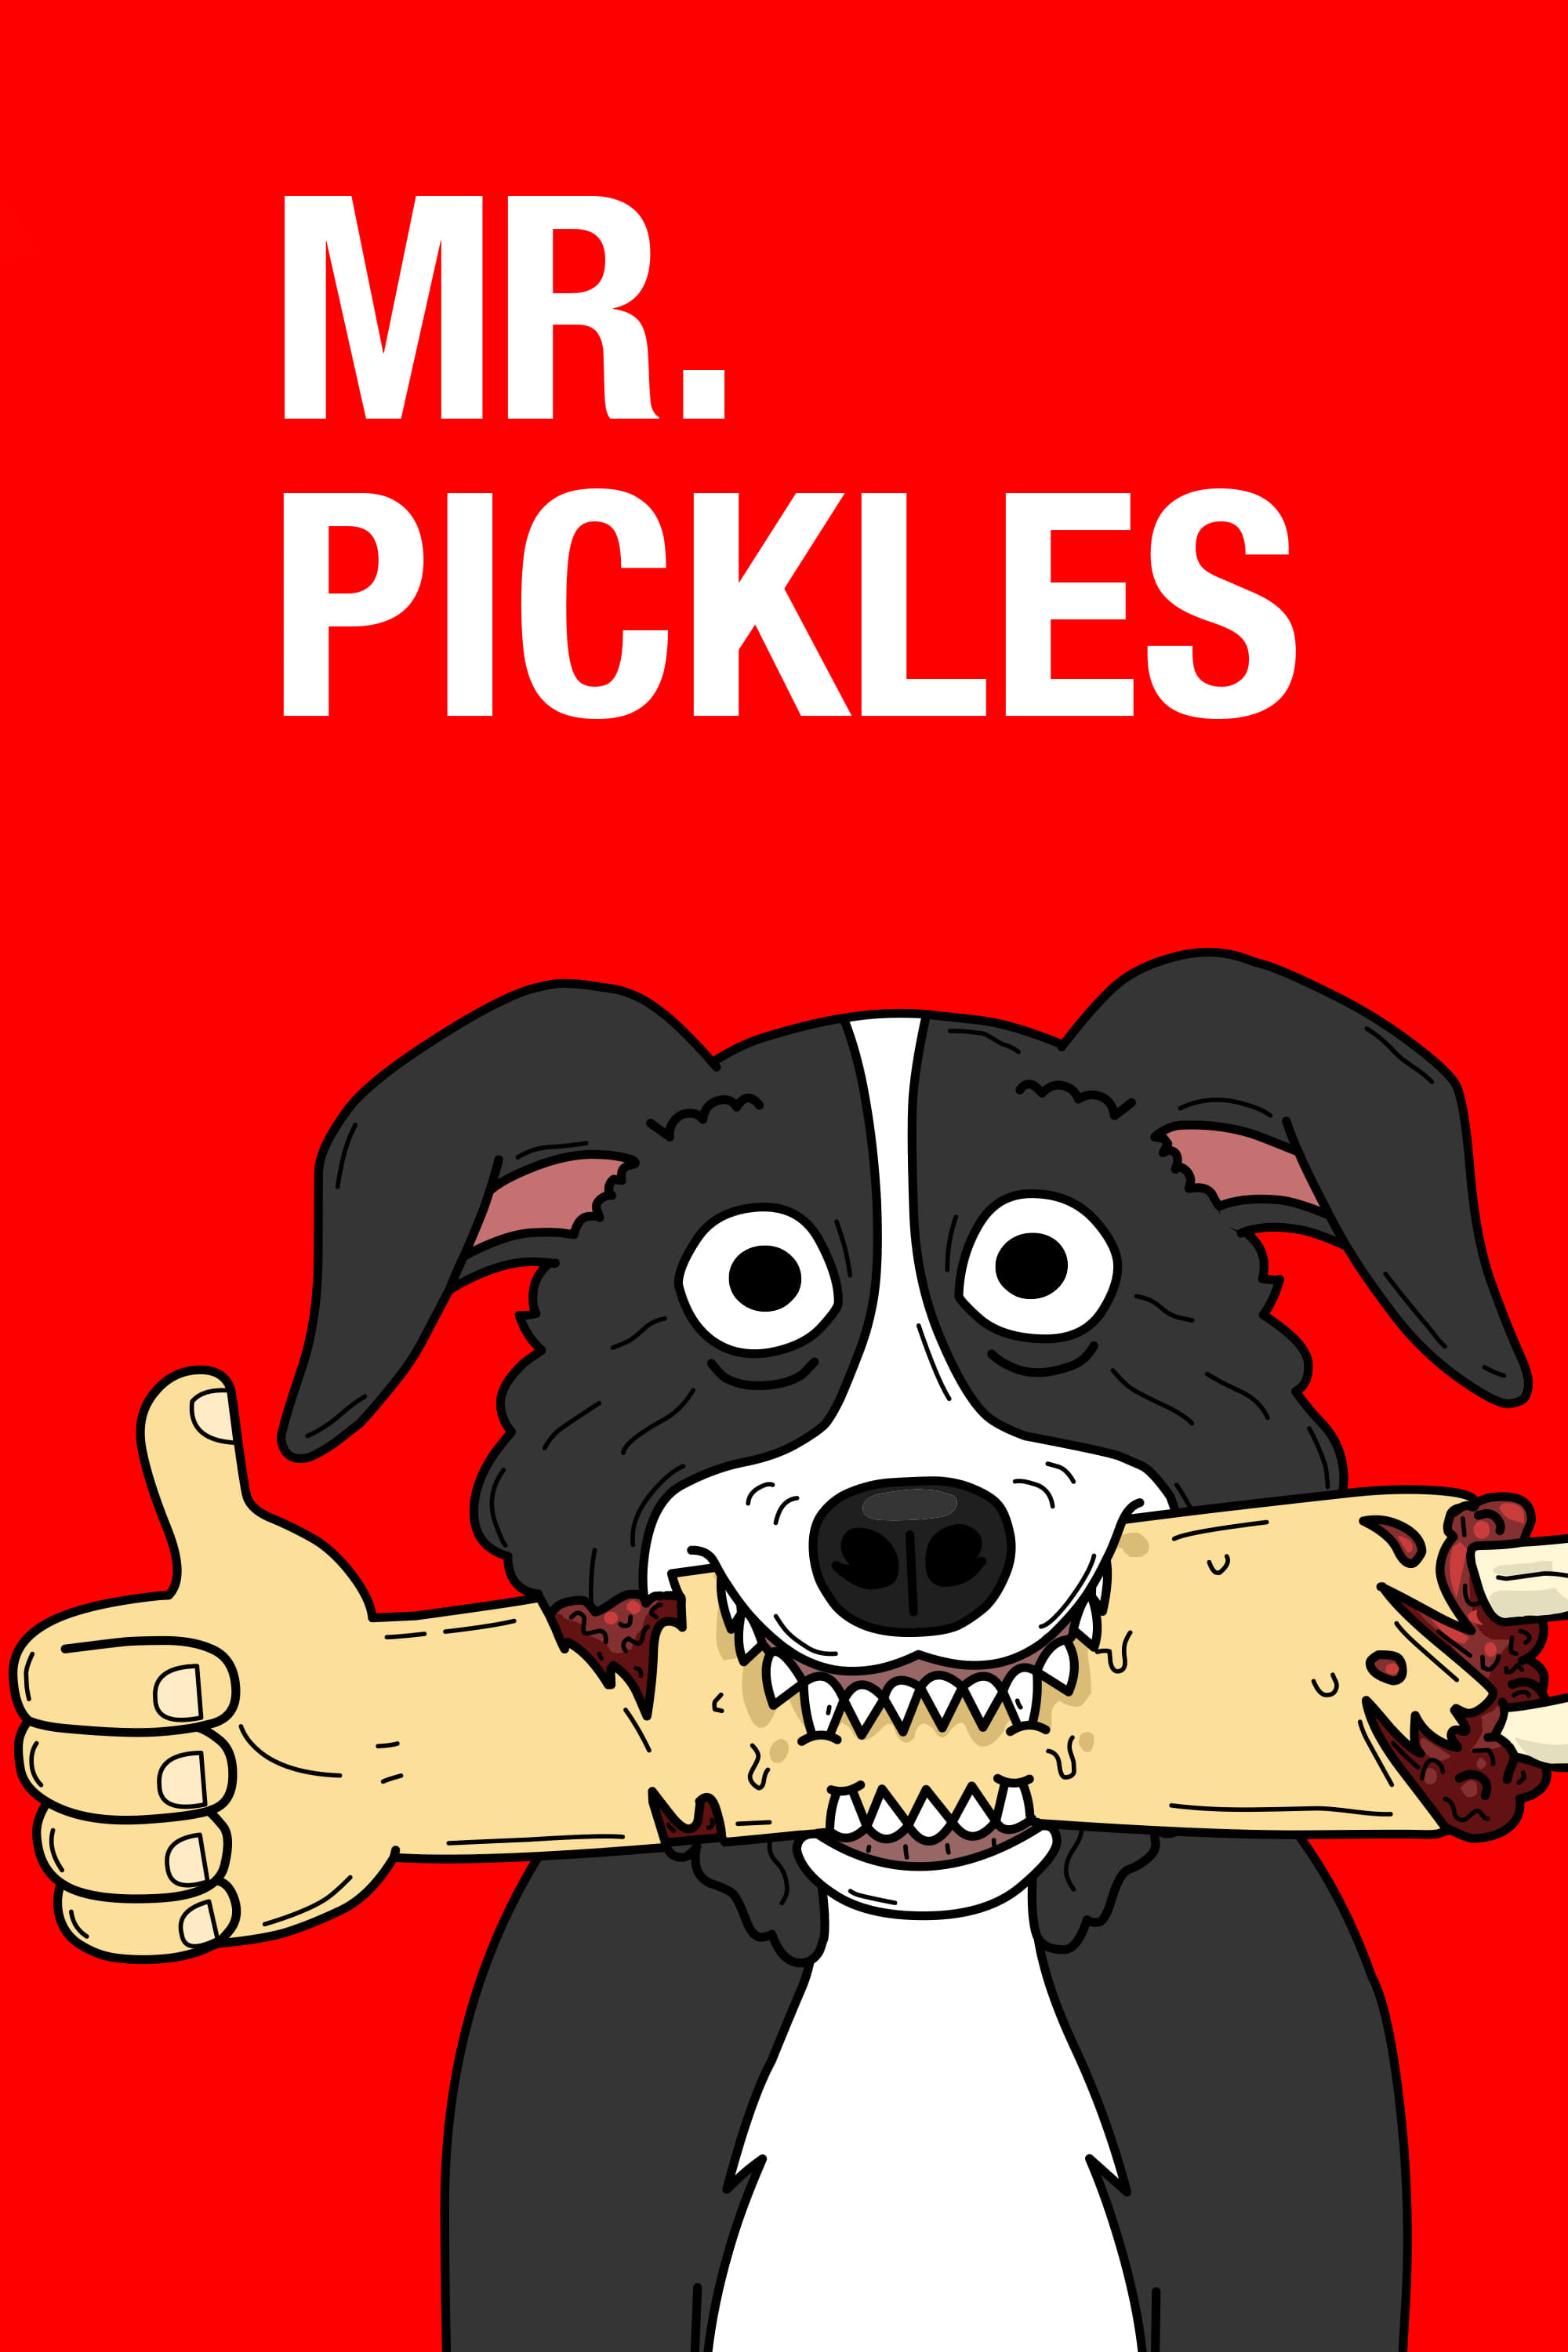 Mr. Pickles' />